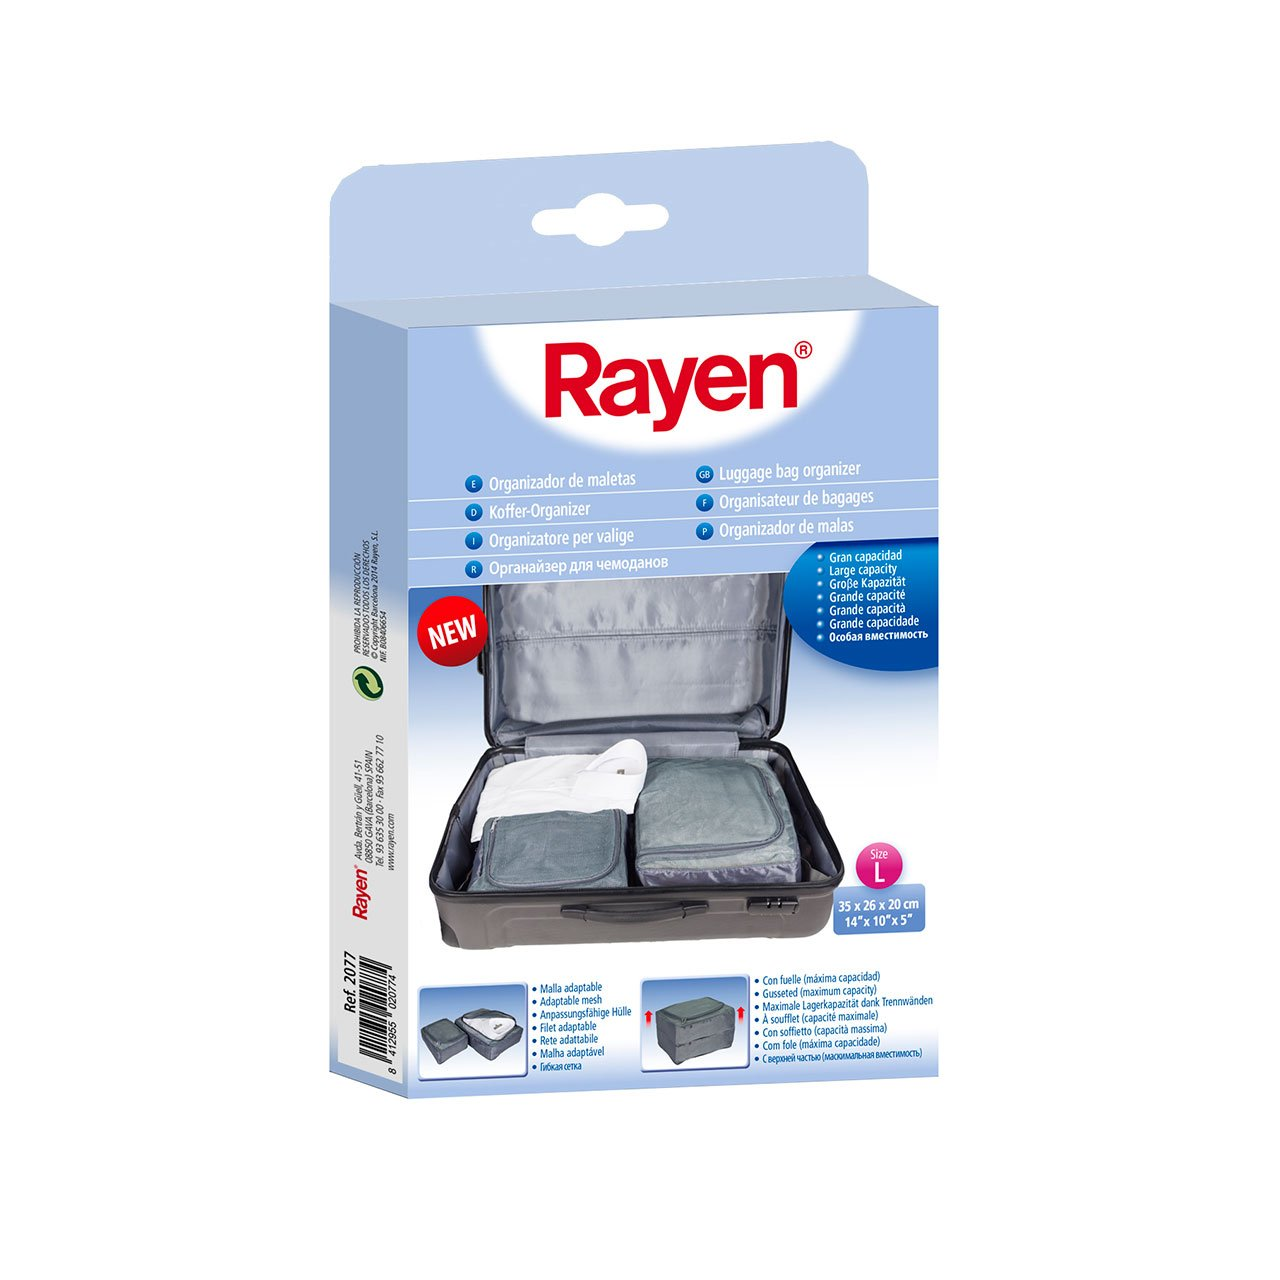 Amazon.com: RAYEN 2078 Case Organiser, 35 x 26 x 20 cm Grey: Kitchen & Dining